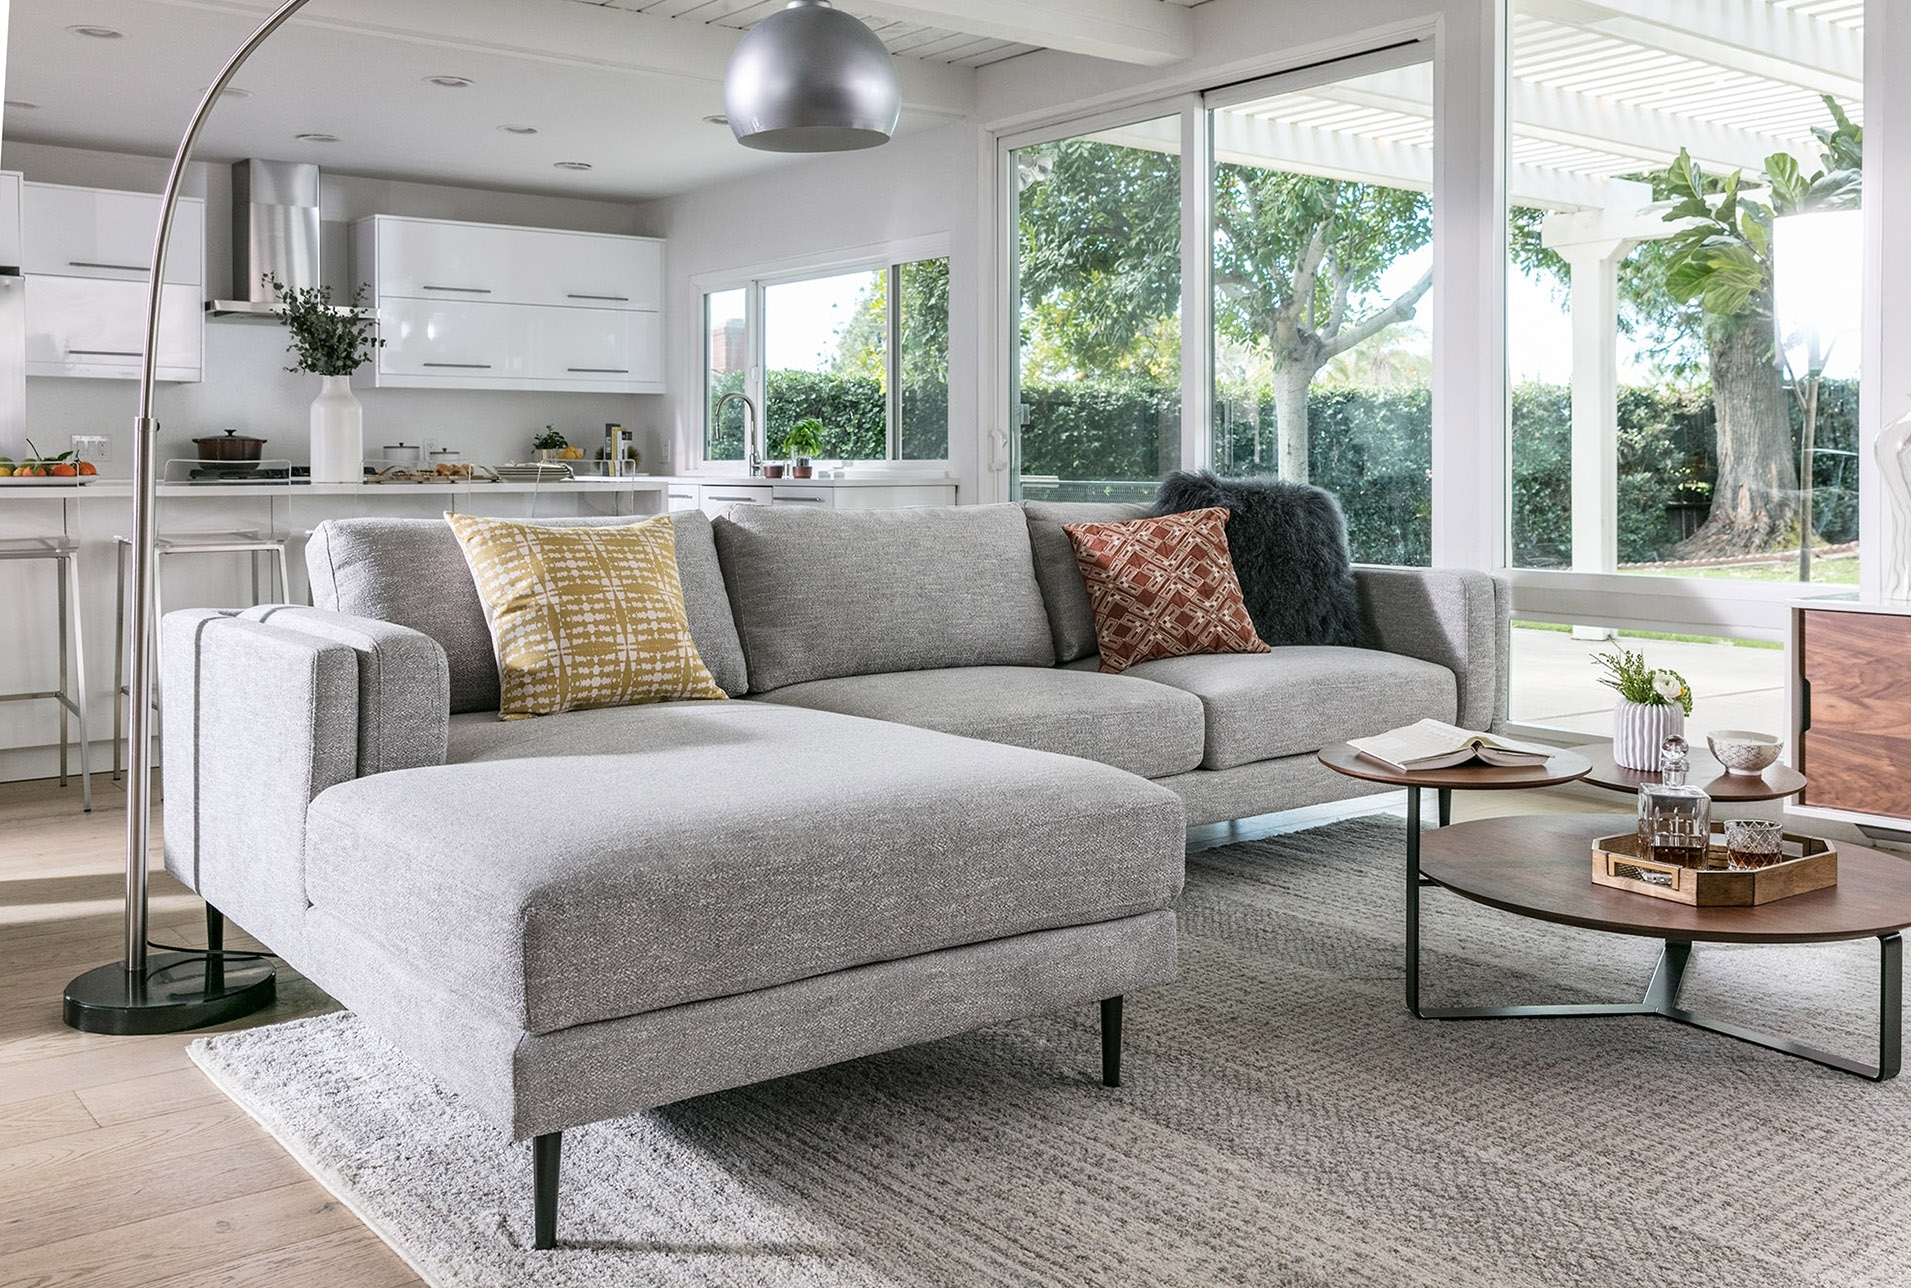 Aquarius Light Grey 2 Piece Sectional W/laf Chaise | Products intended for Aquarius Light Grey 2 Piece Sectionals With Laf Chaise (Image 7 of 30)